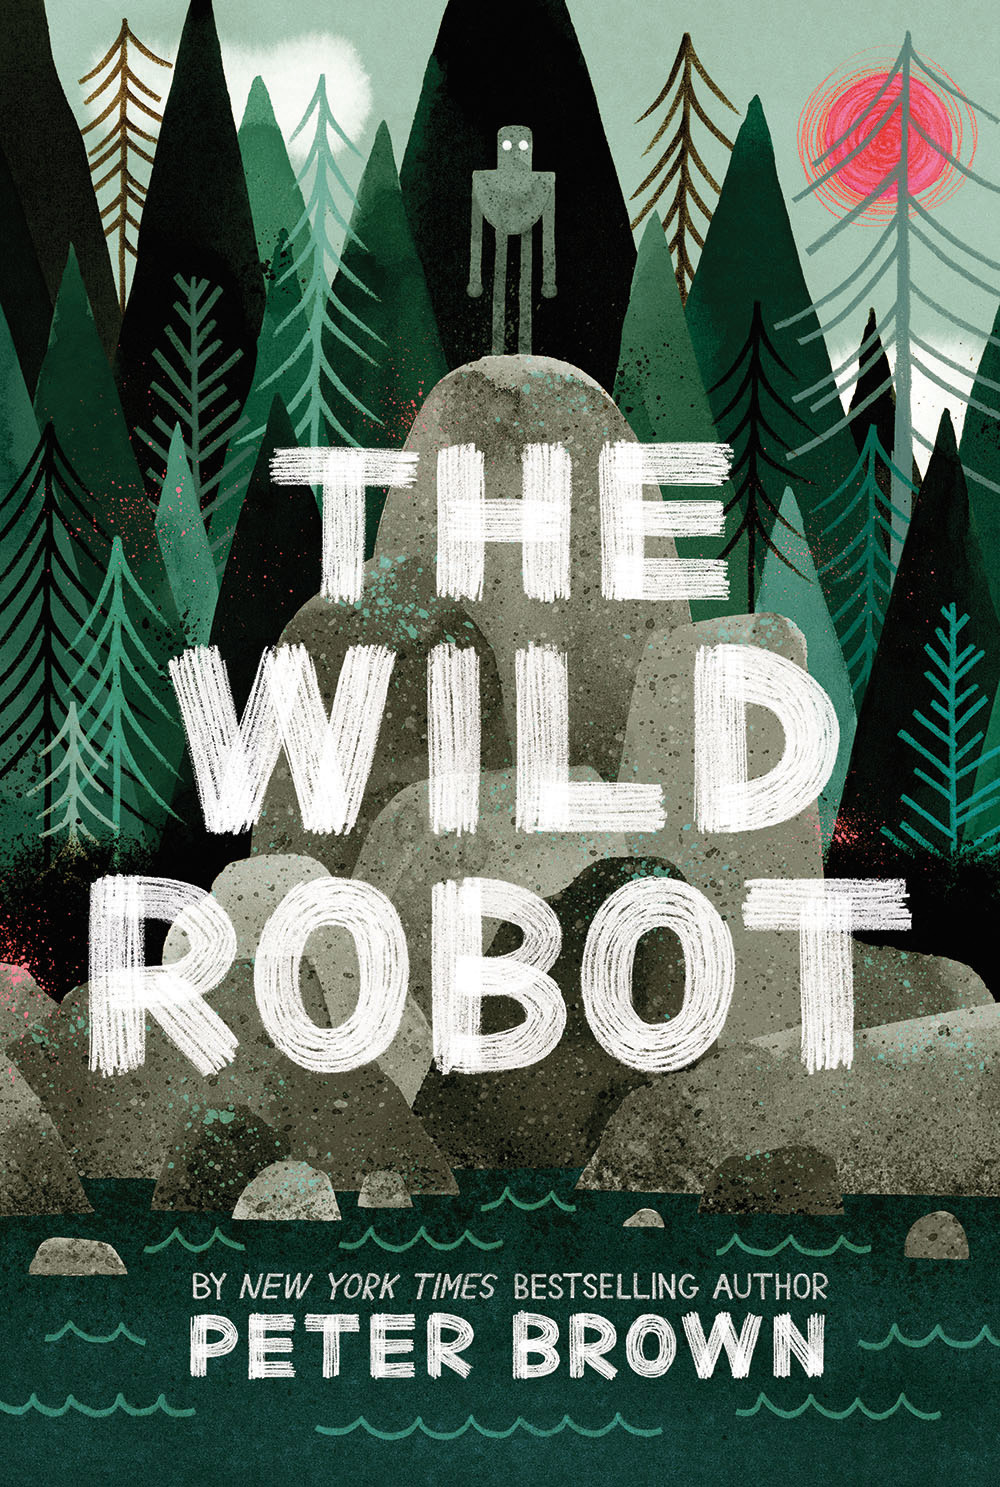 Brown, Peter 2016_05 - THE WILD ROBOT - MG - RLM PR.jpg